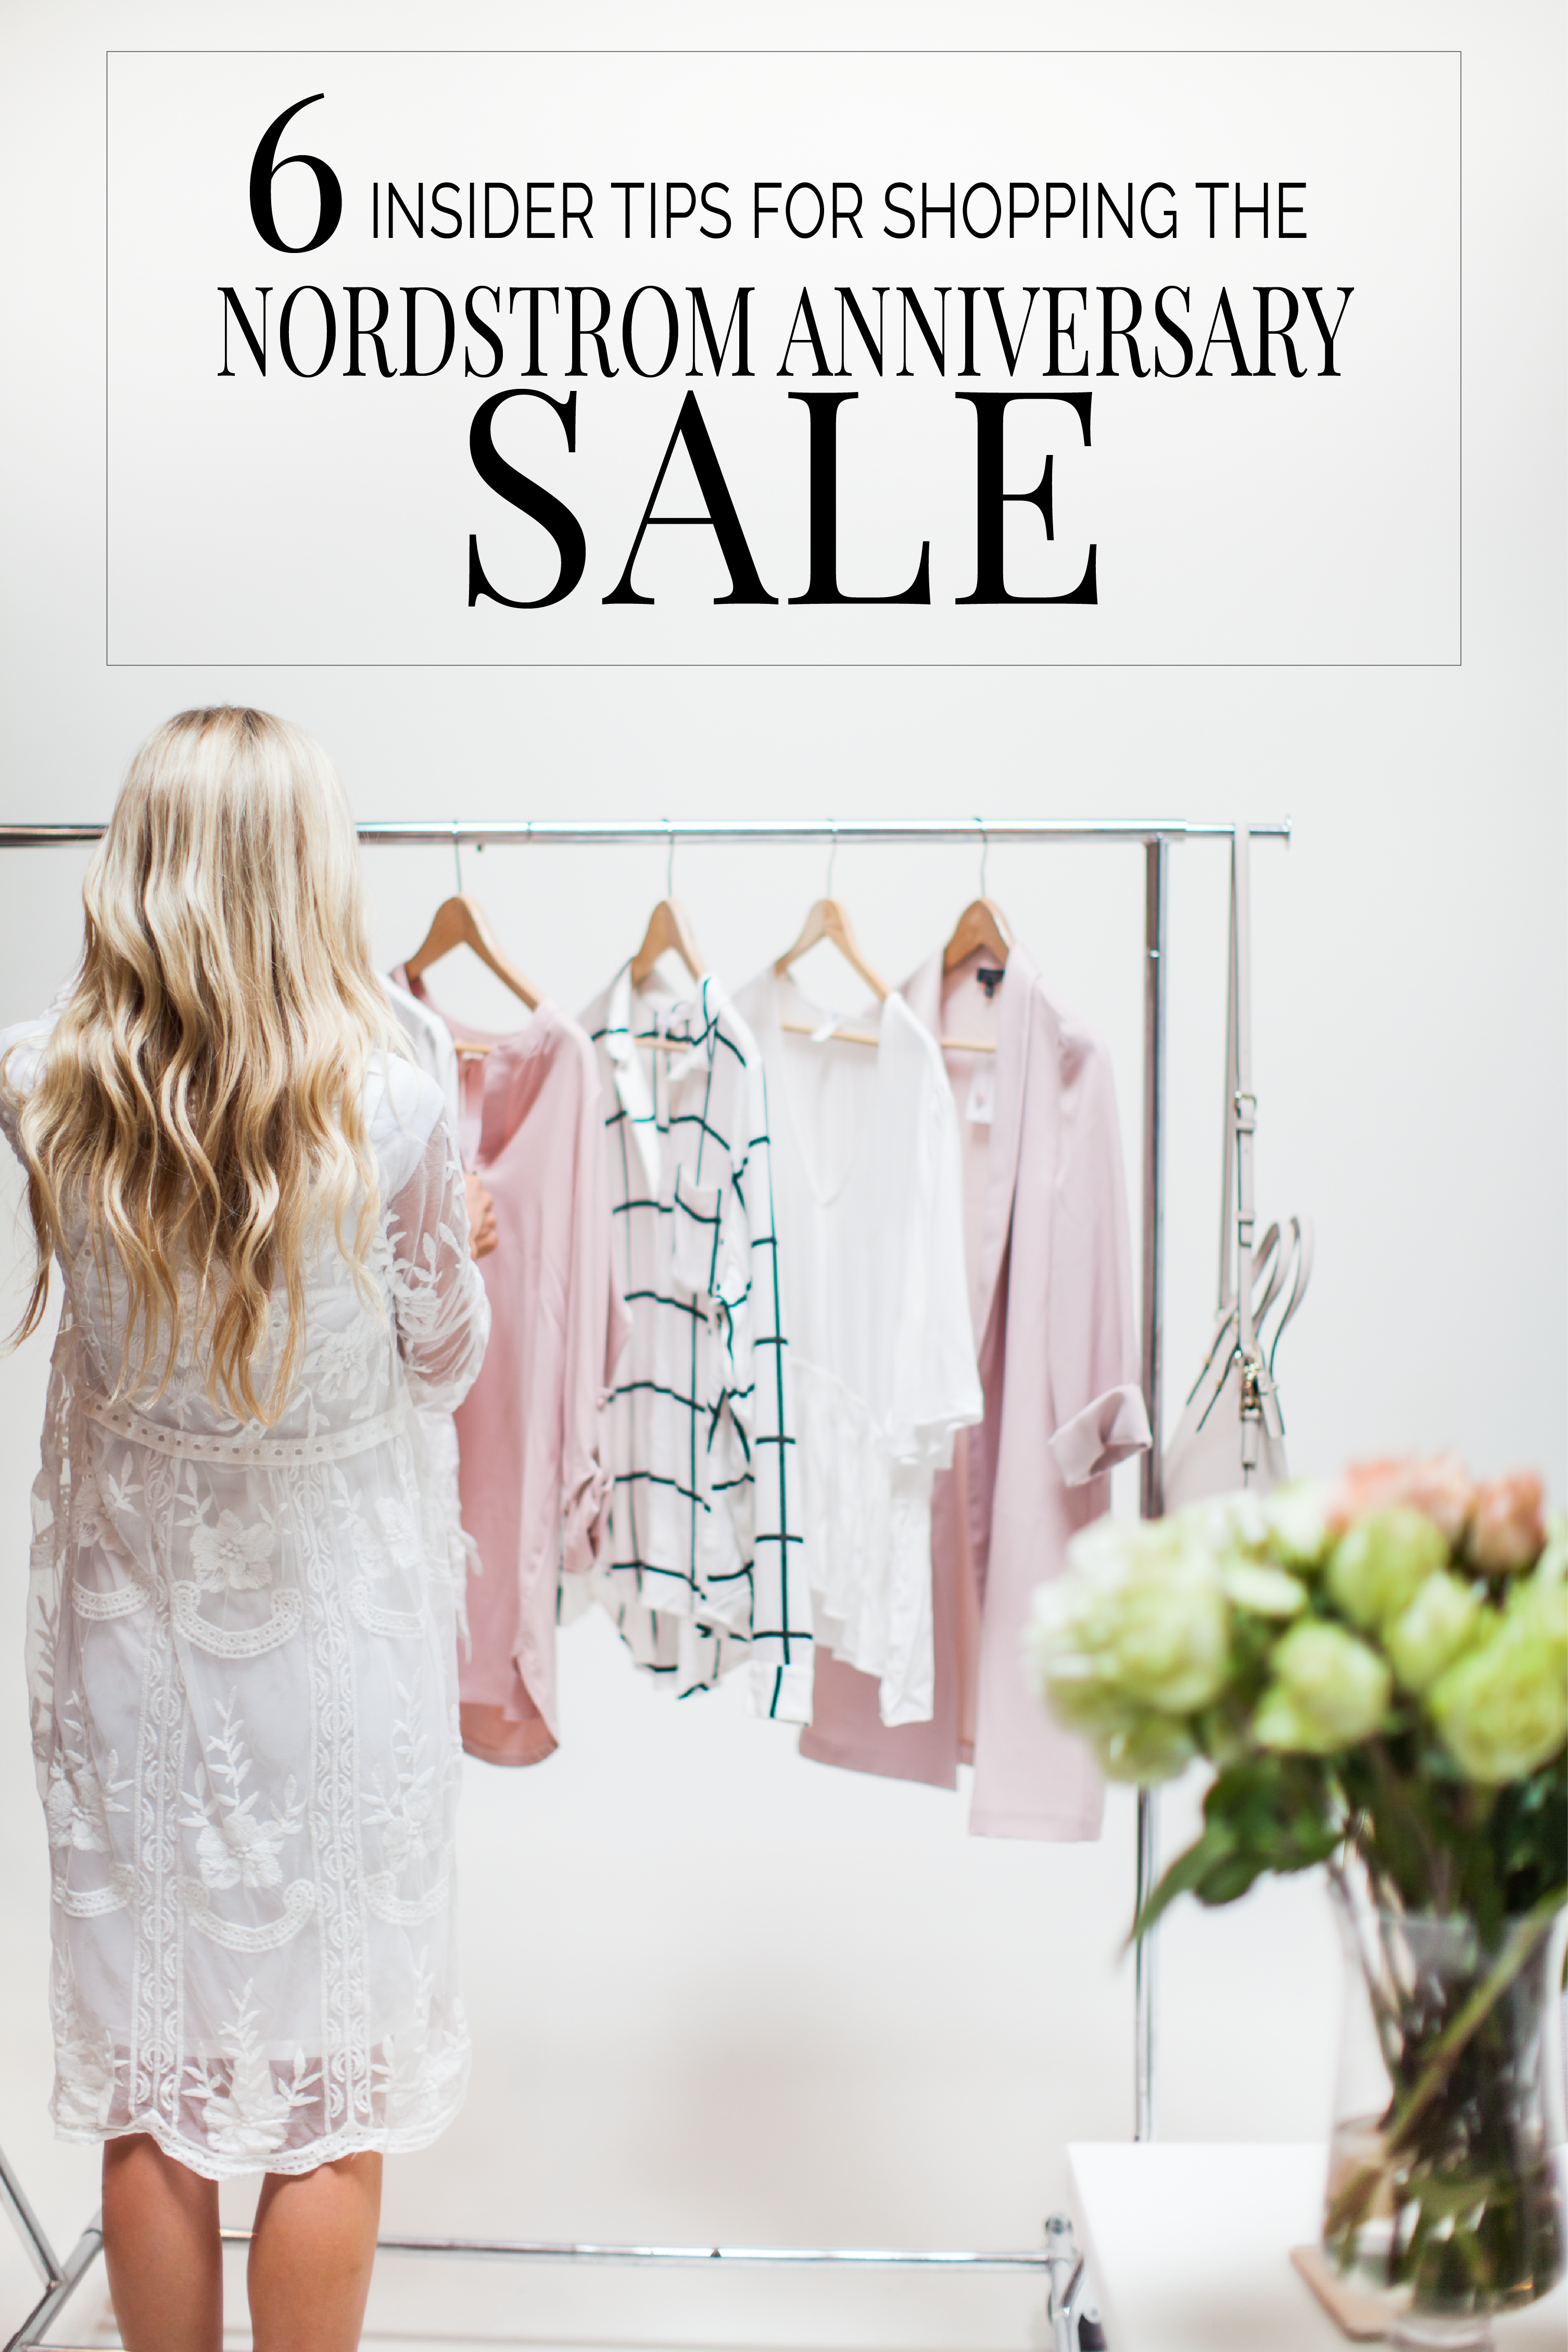 6 insider tips for shopping the Nordstrom Anniversary Sale.